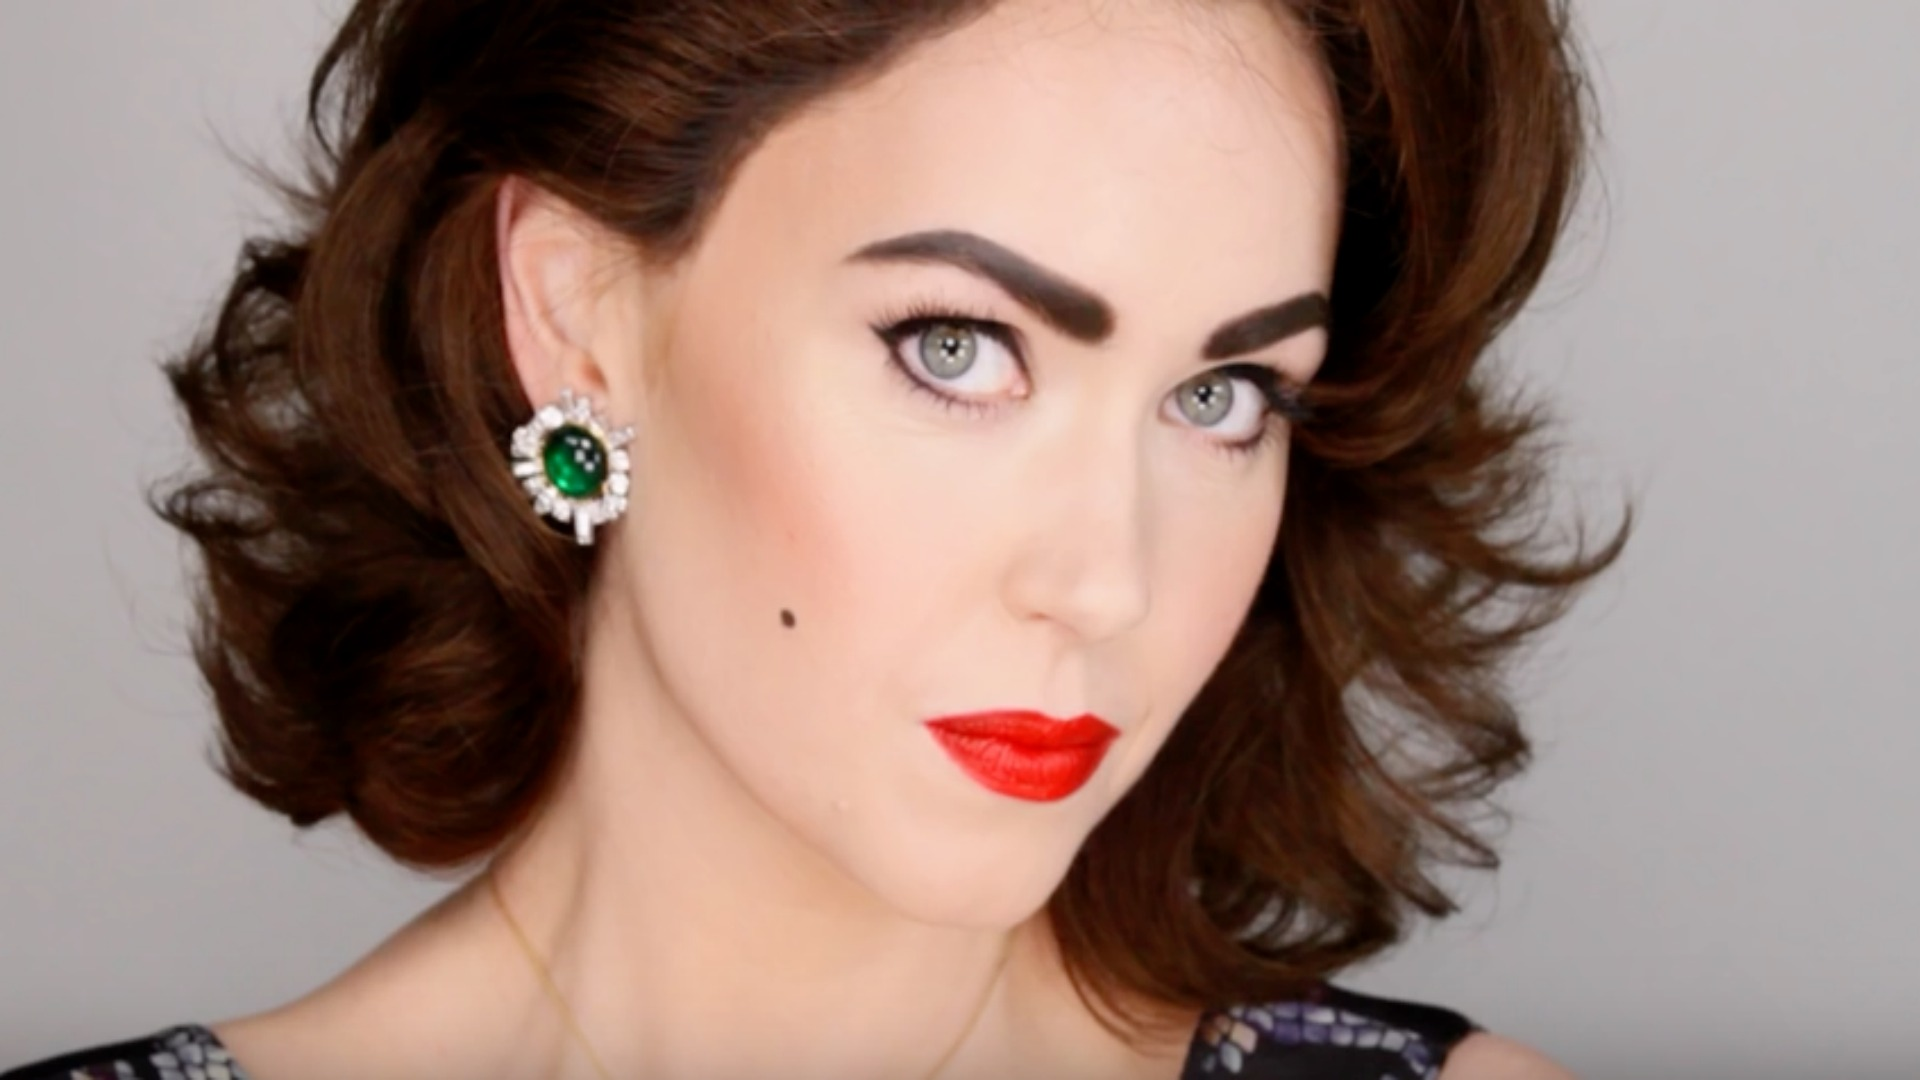 Makeup Artist Shows That Anyone Can Be Transformed Into Liz Taylor